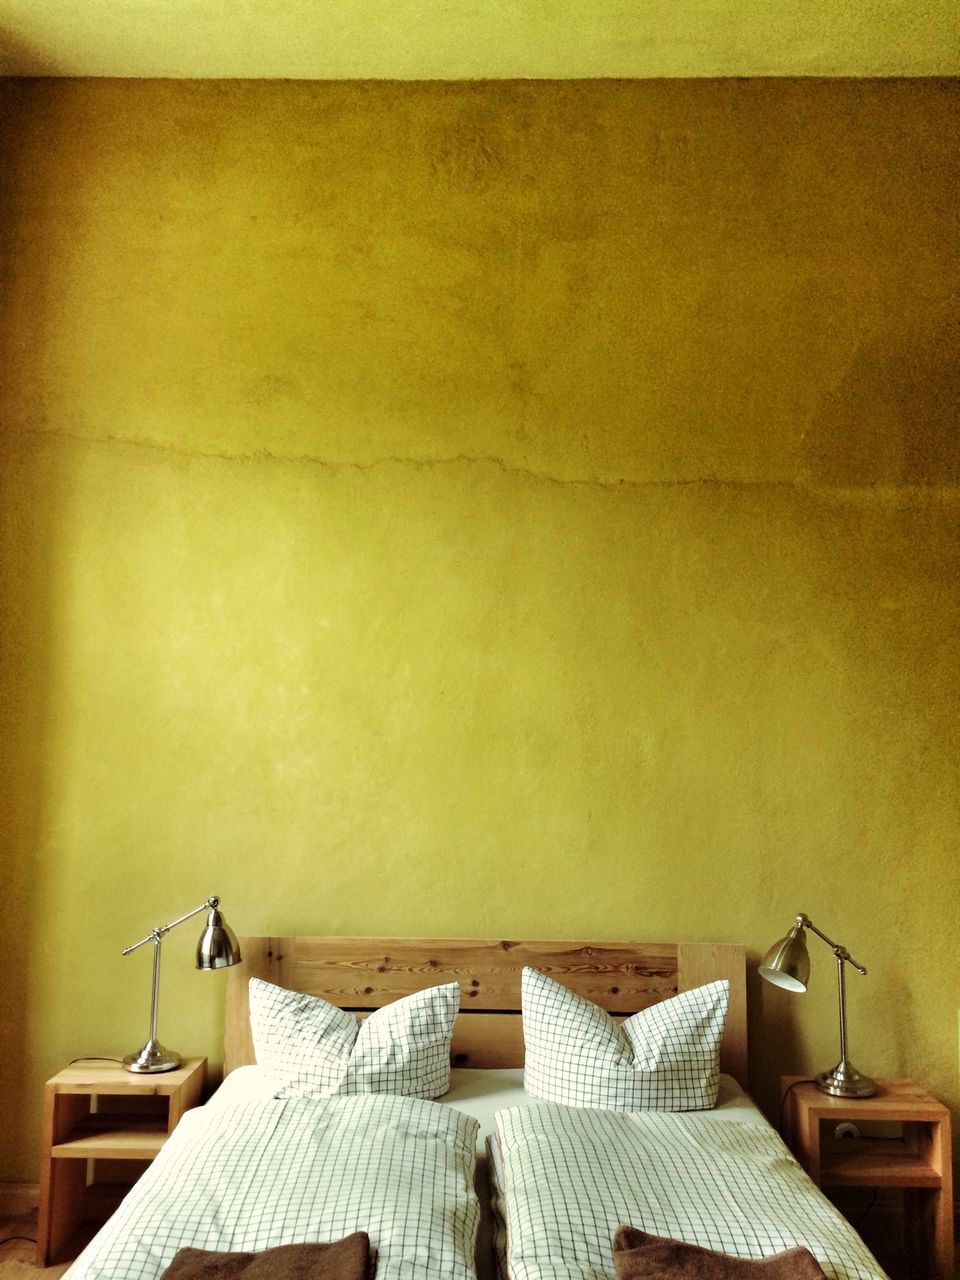 Interior of bedroom with yellow wall